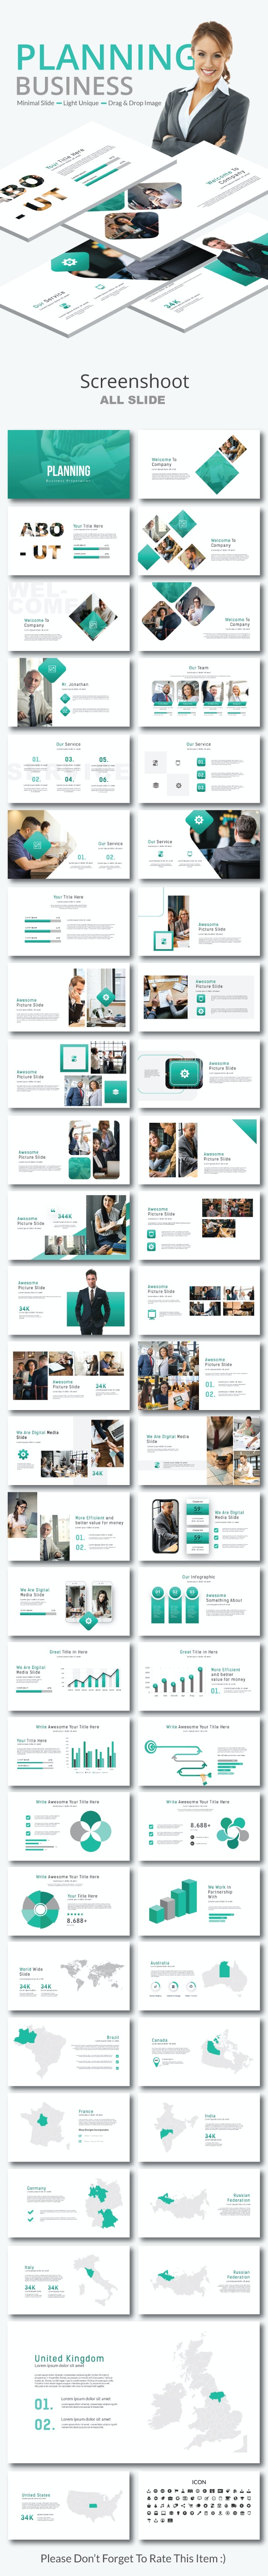 Planning Business Google Slide - Business PowerPoint Templates